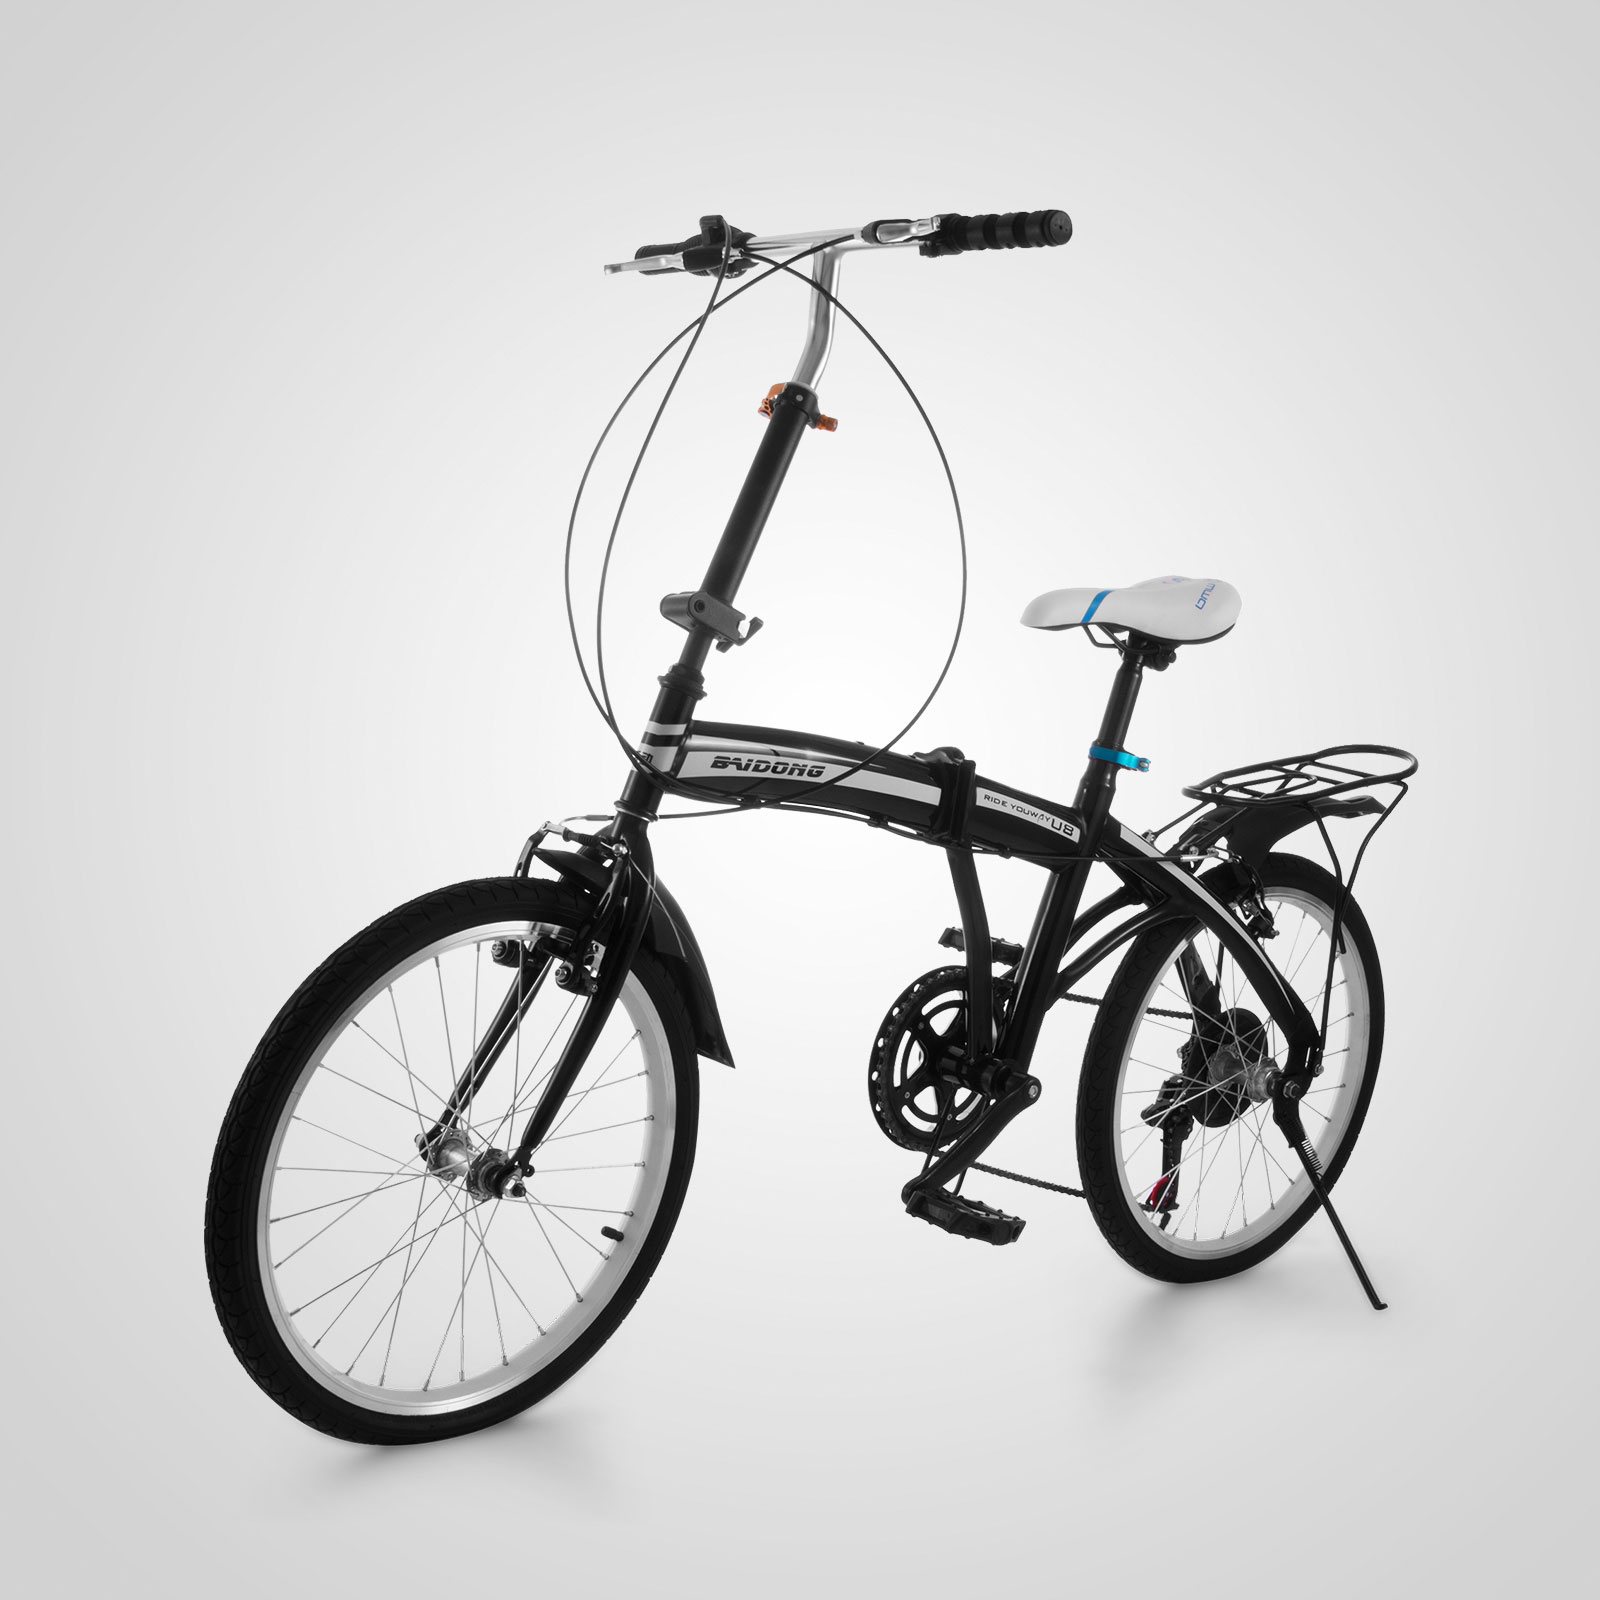 20 mini folding bike 6 speed foldable bicycle shimano. Black Bedroom Furniture Sets. Home Design Ideas